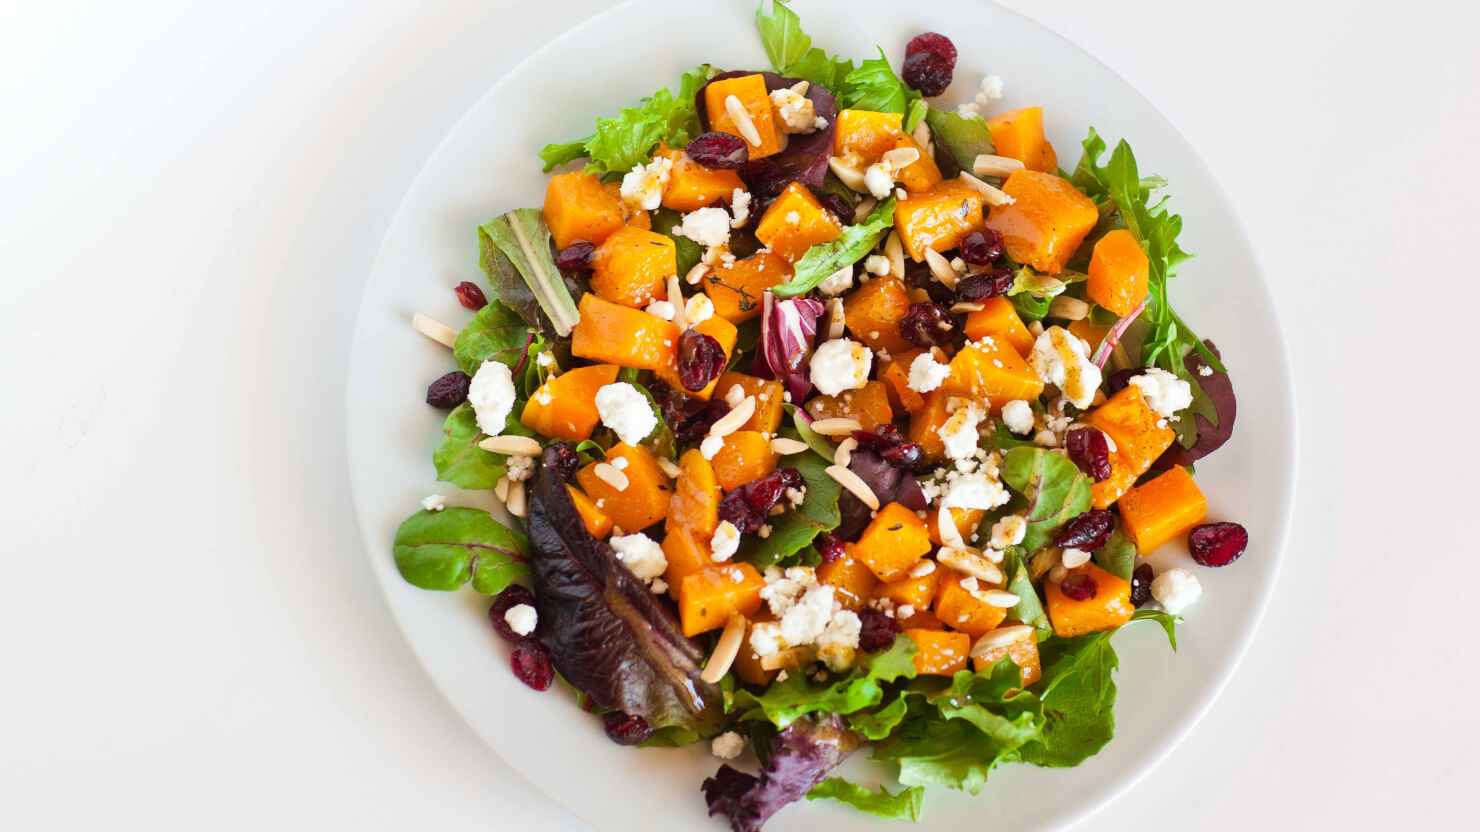 Oven-Roasted Butternut Squash Salad - Video Recipe